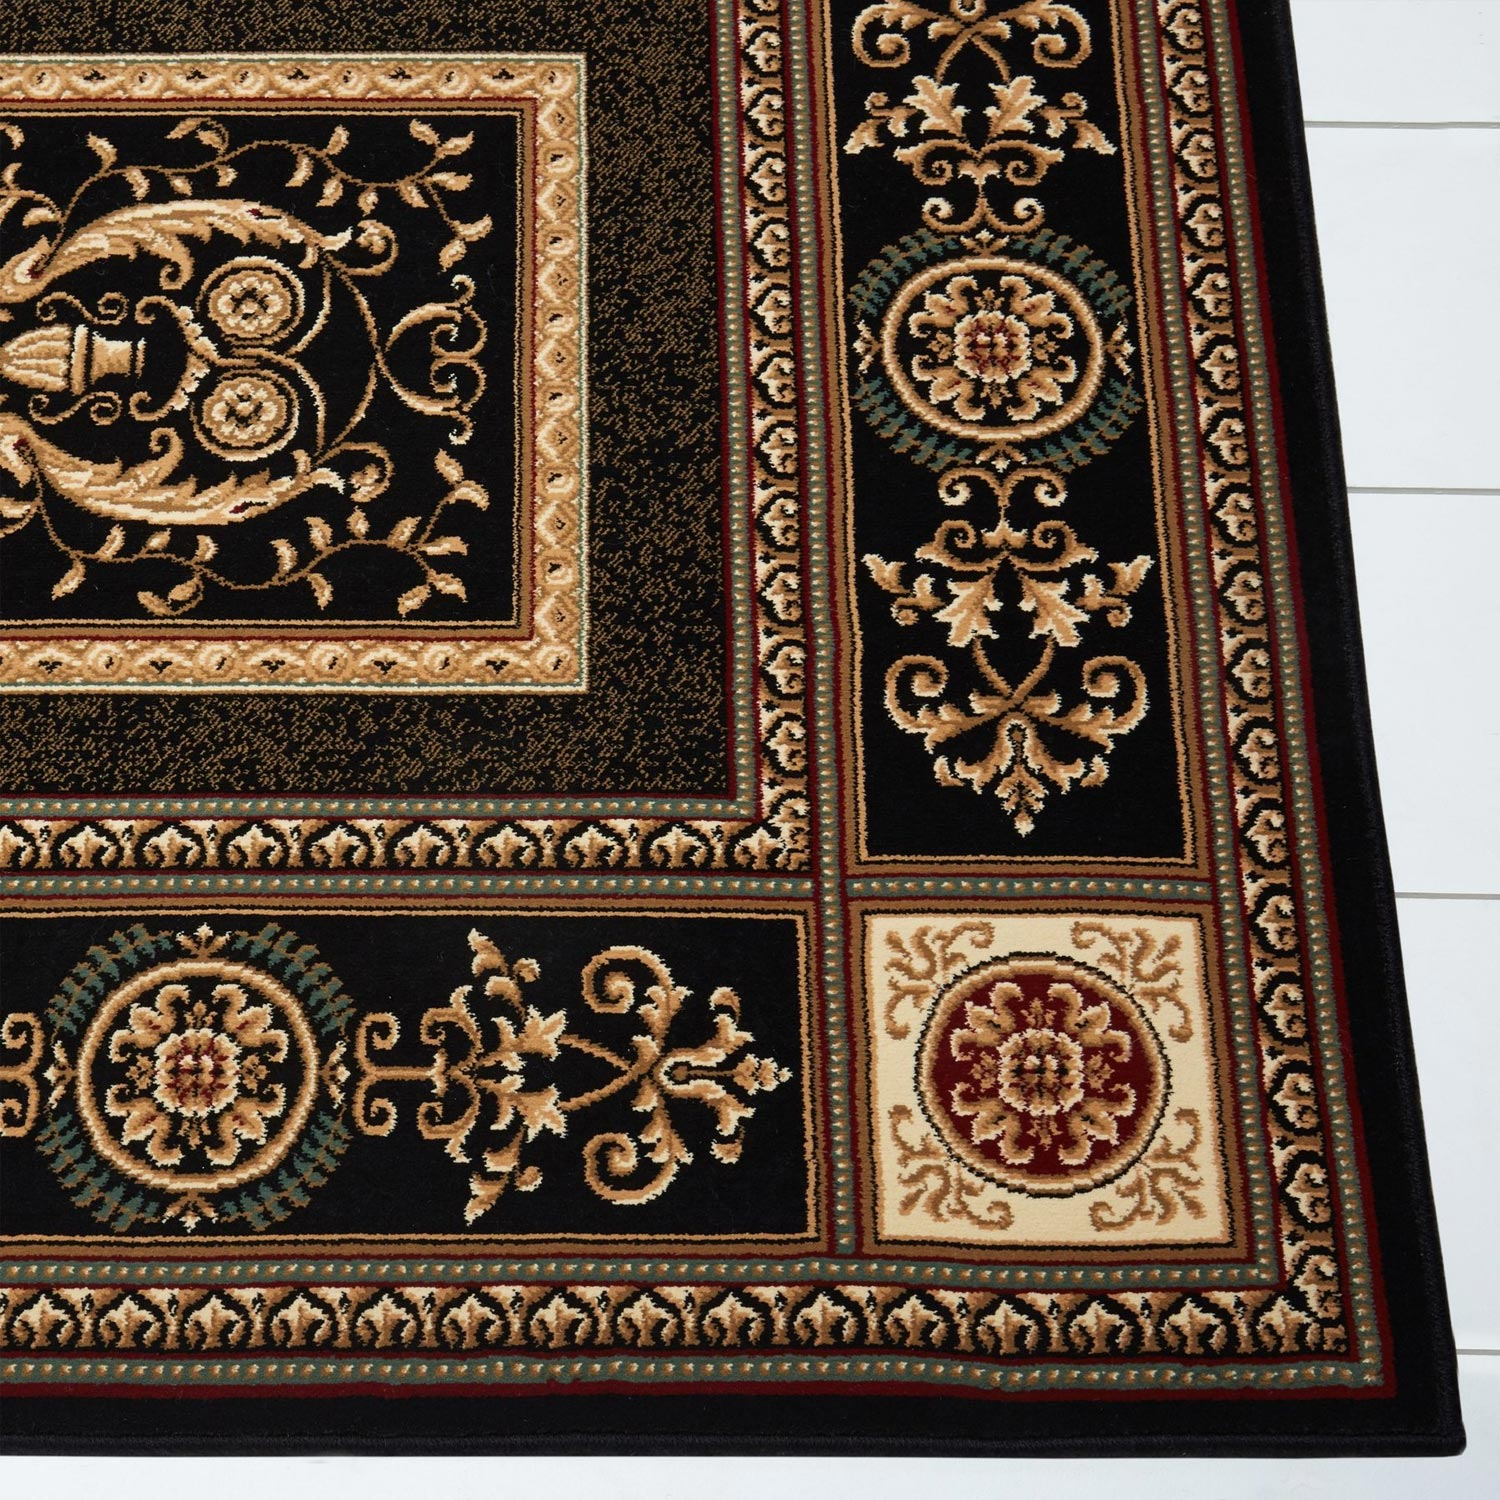 Regency Black Area Rug - 8307-450